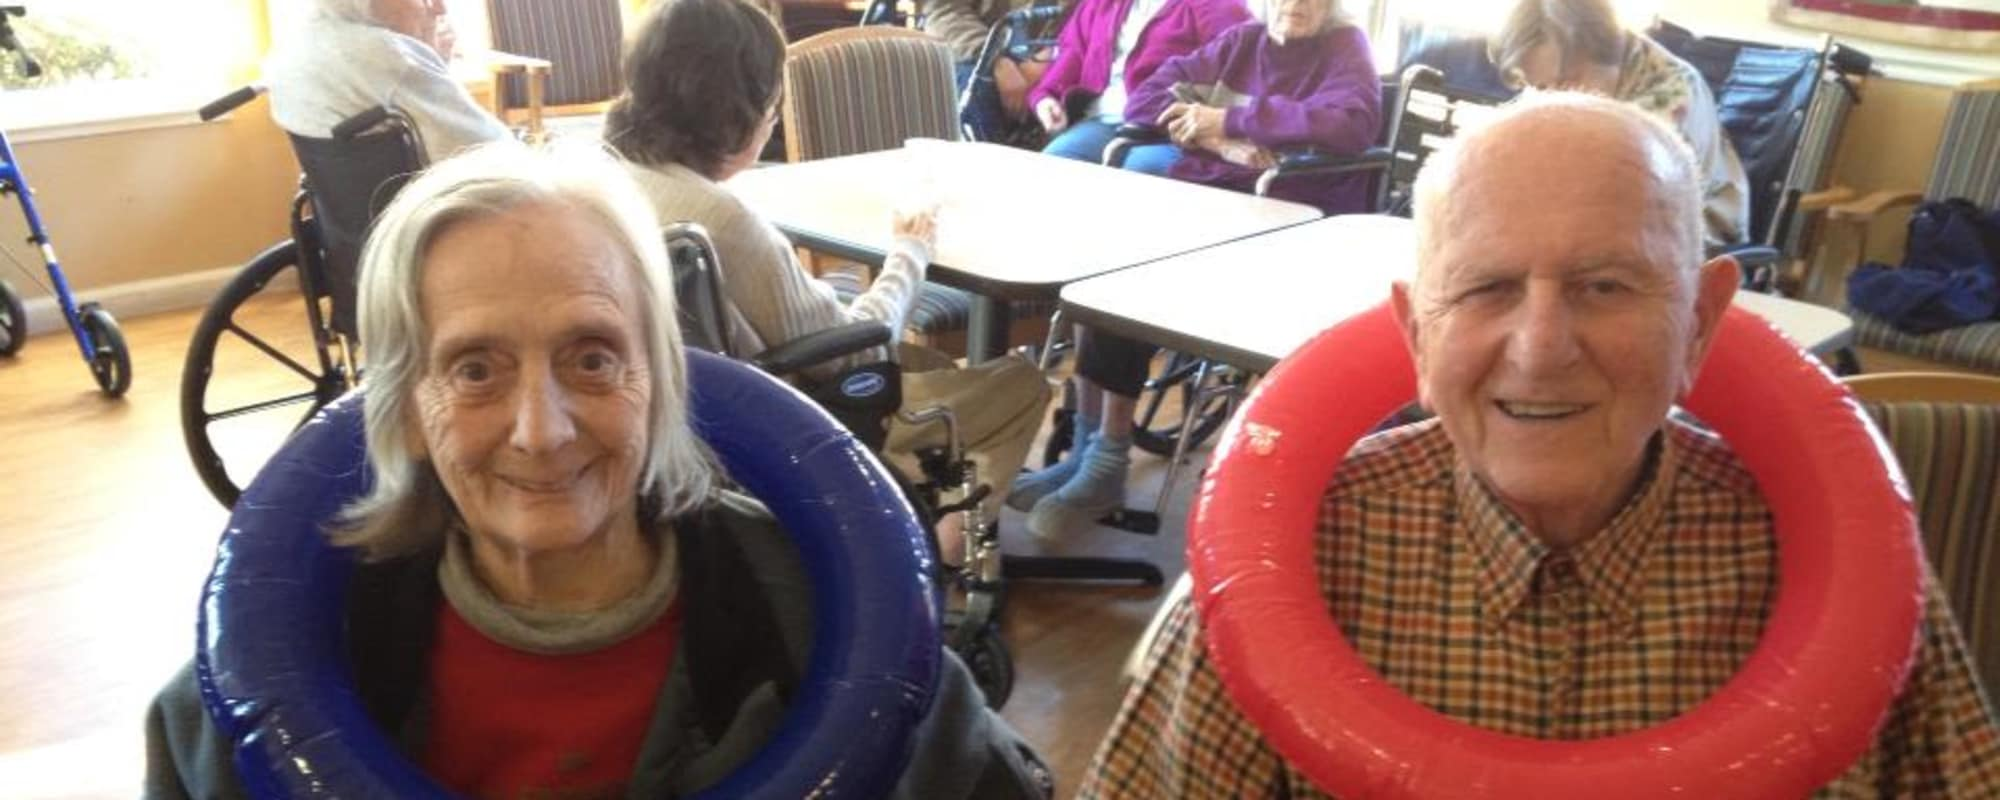 Seniors being silly at MuirWoods Memory Care in Petaluma, California